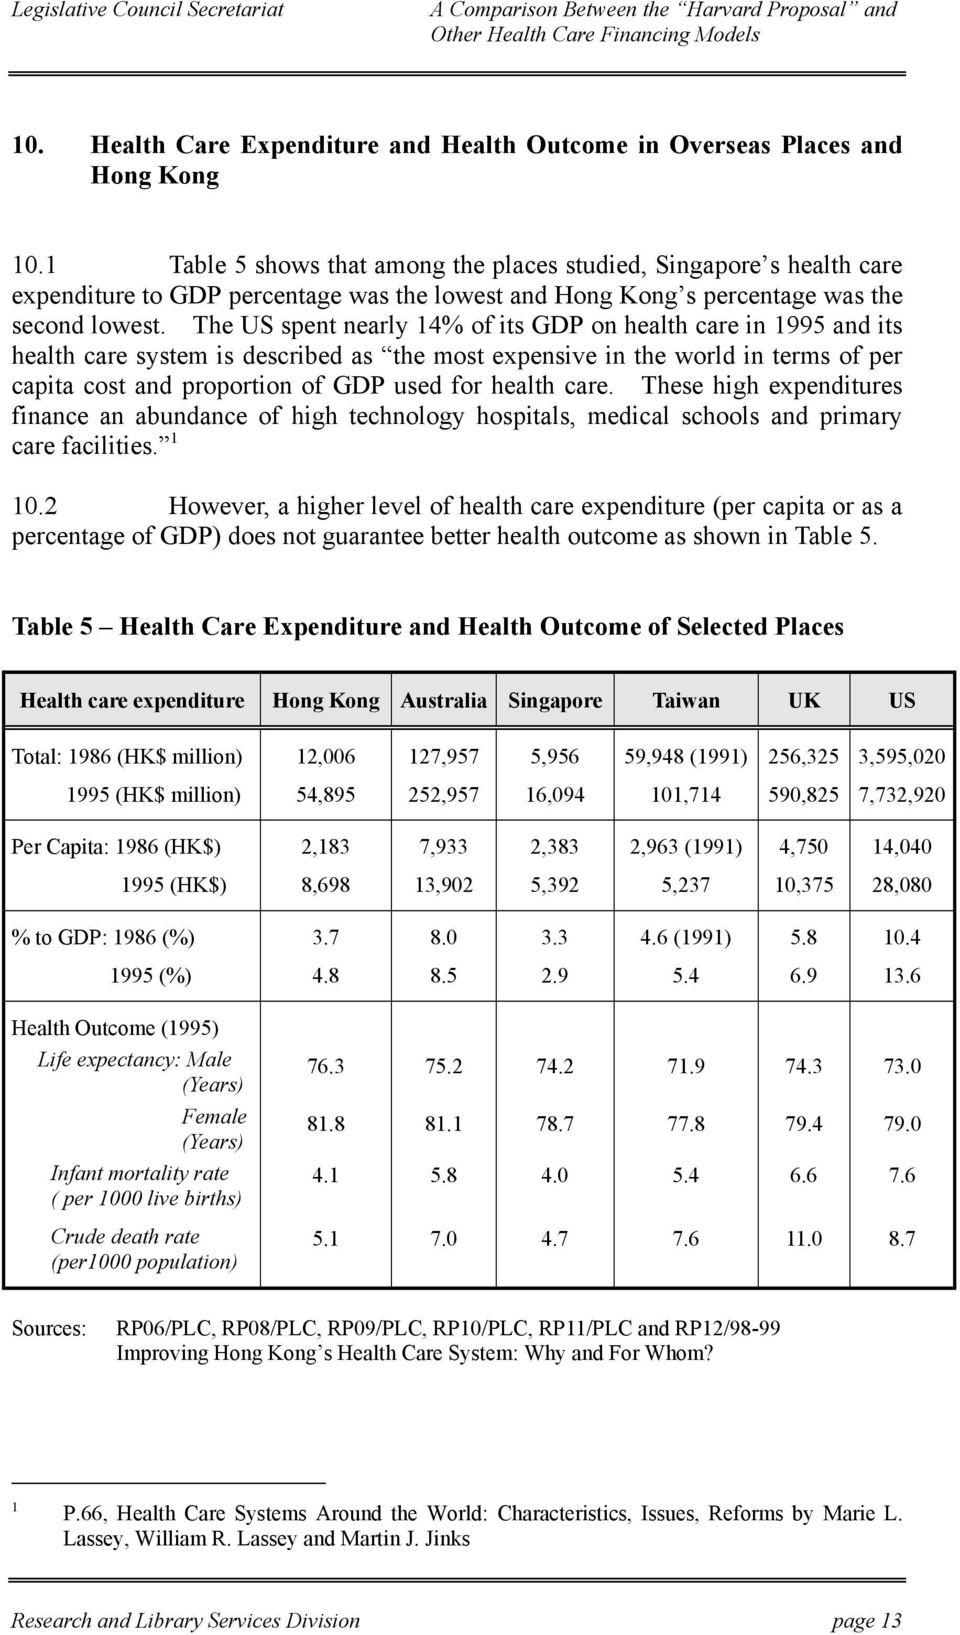 The US spent nearly 14% of its GDP on health care in 1995 and its health care system is described as the most expensive in the world in terms of per capita cost and proportion of GDP used for health